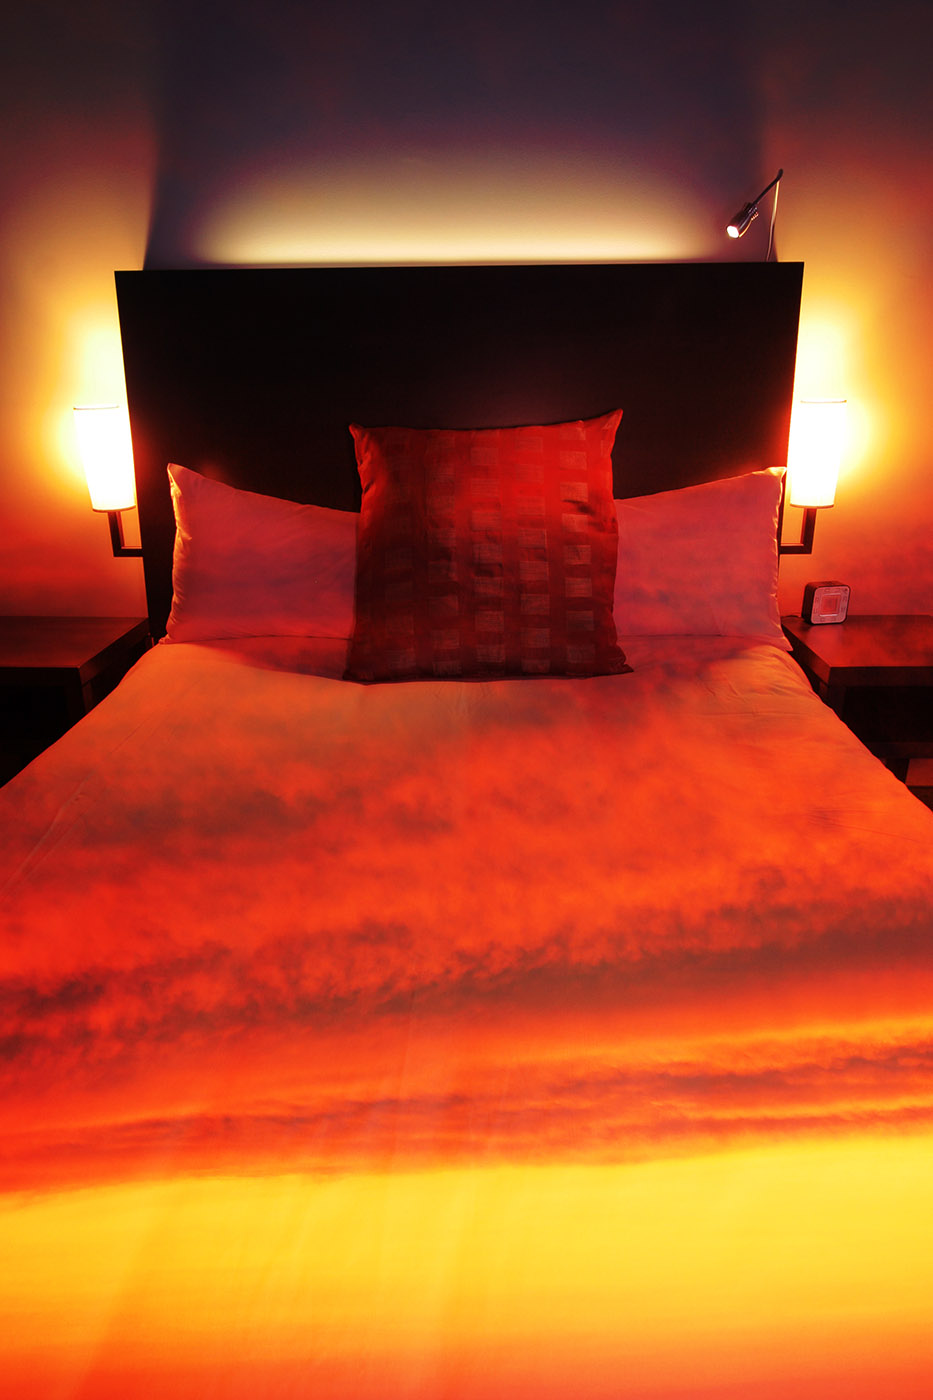 Sunset Bed Cover 2 - Colorful Stock Photos